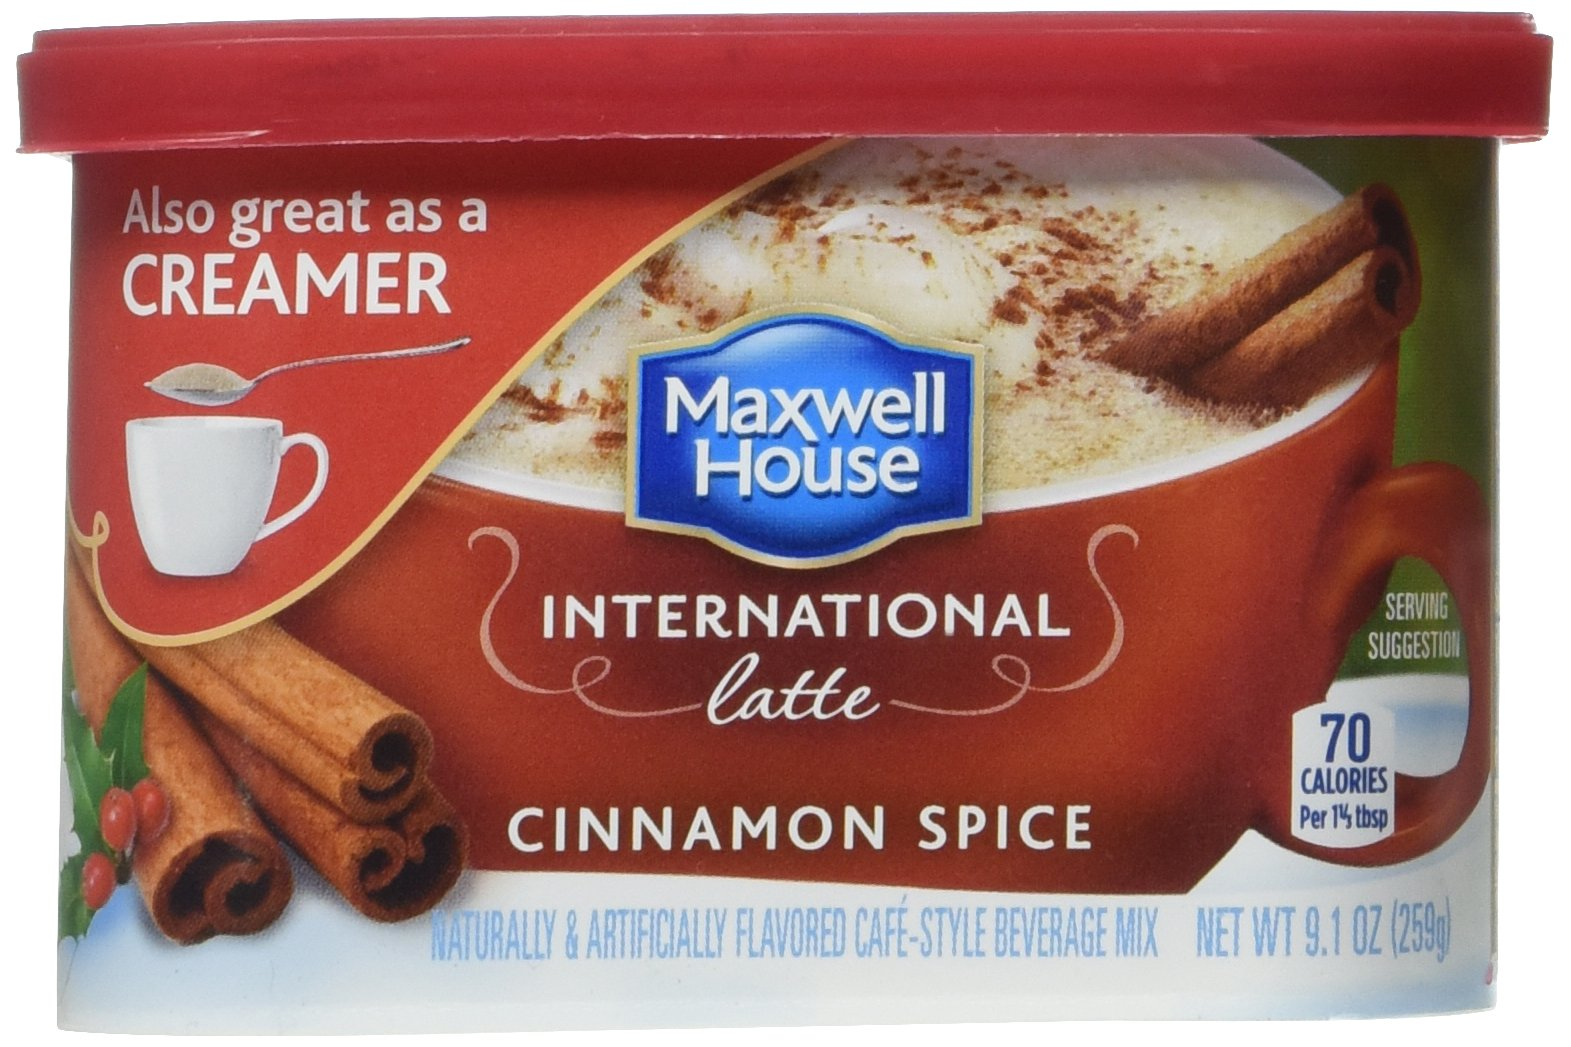 Maxwell House International Cafe Flavored Instant Coffee, Cinnamon Spice Latte, 9.1 Ounce